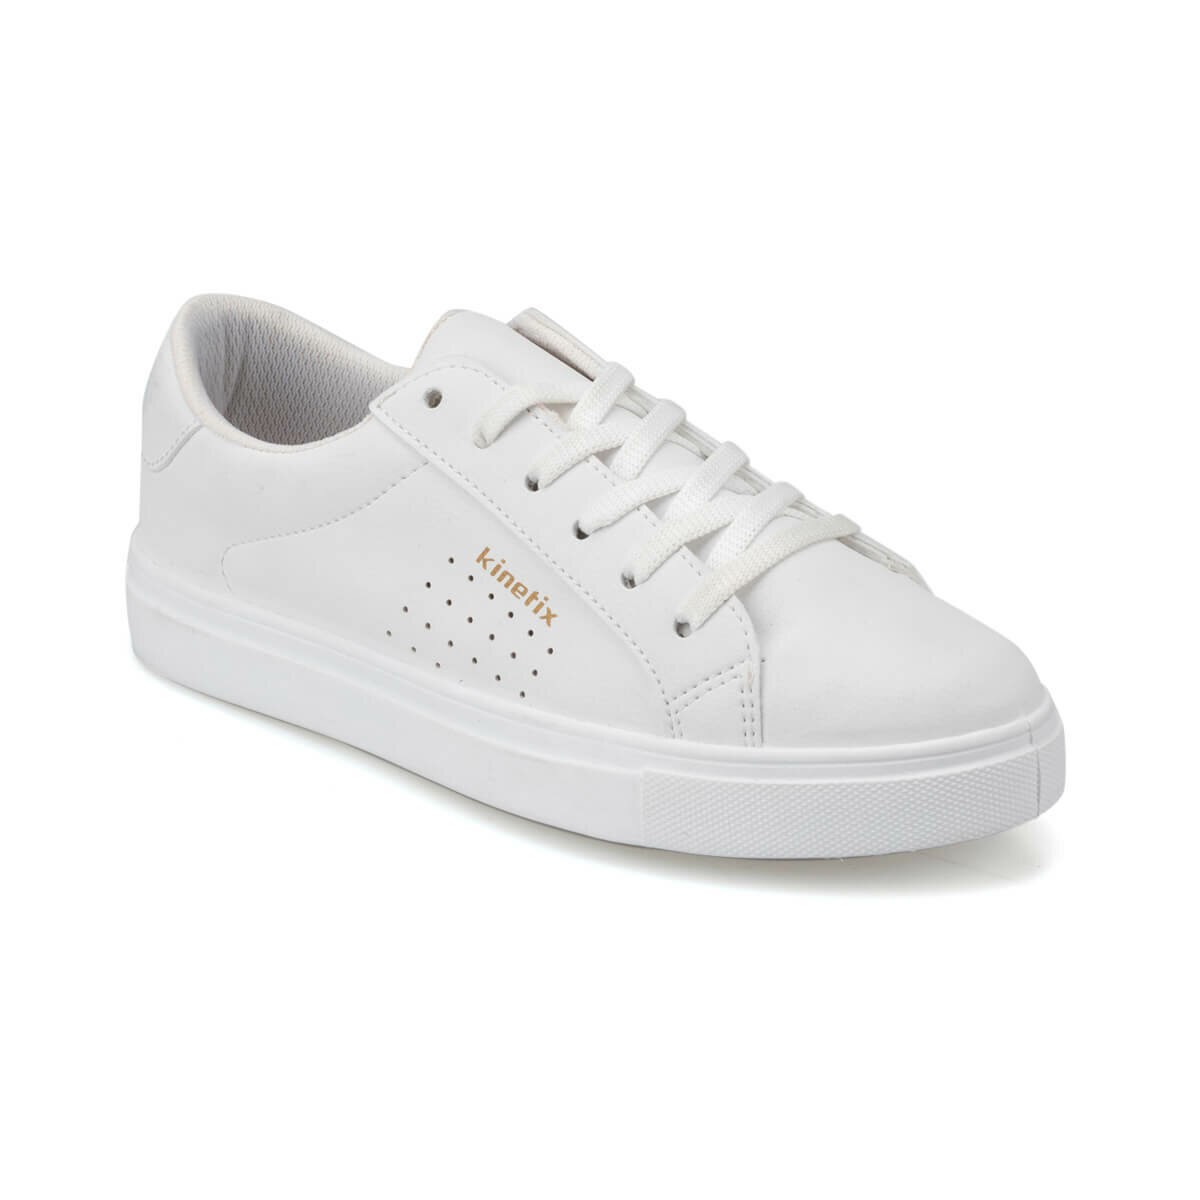 FLO PORO 9PR White Women 'S Sneaker Shoes KINETIX